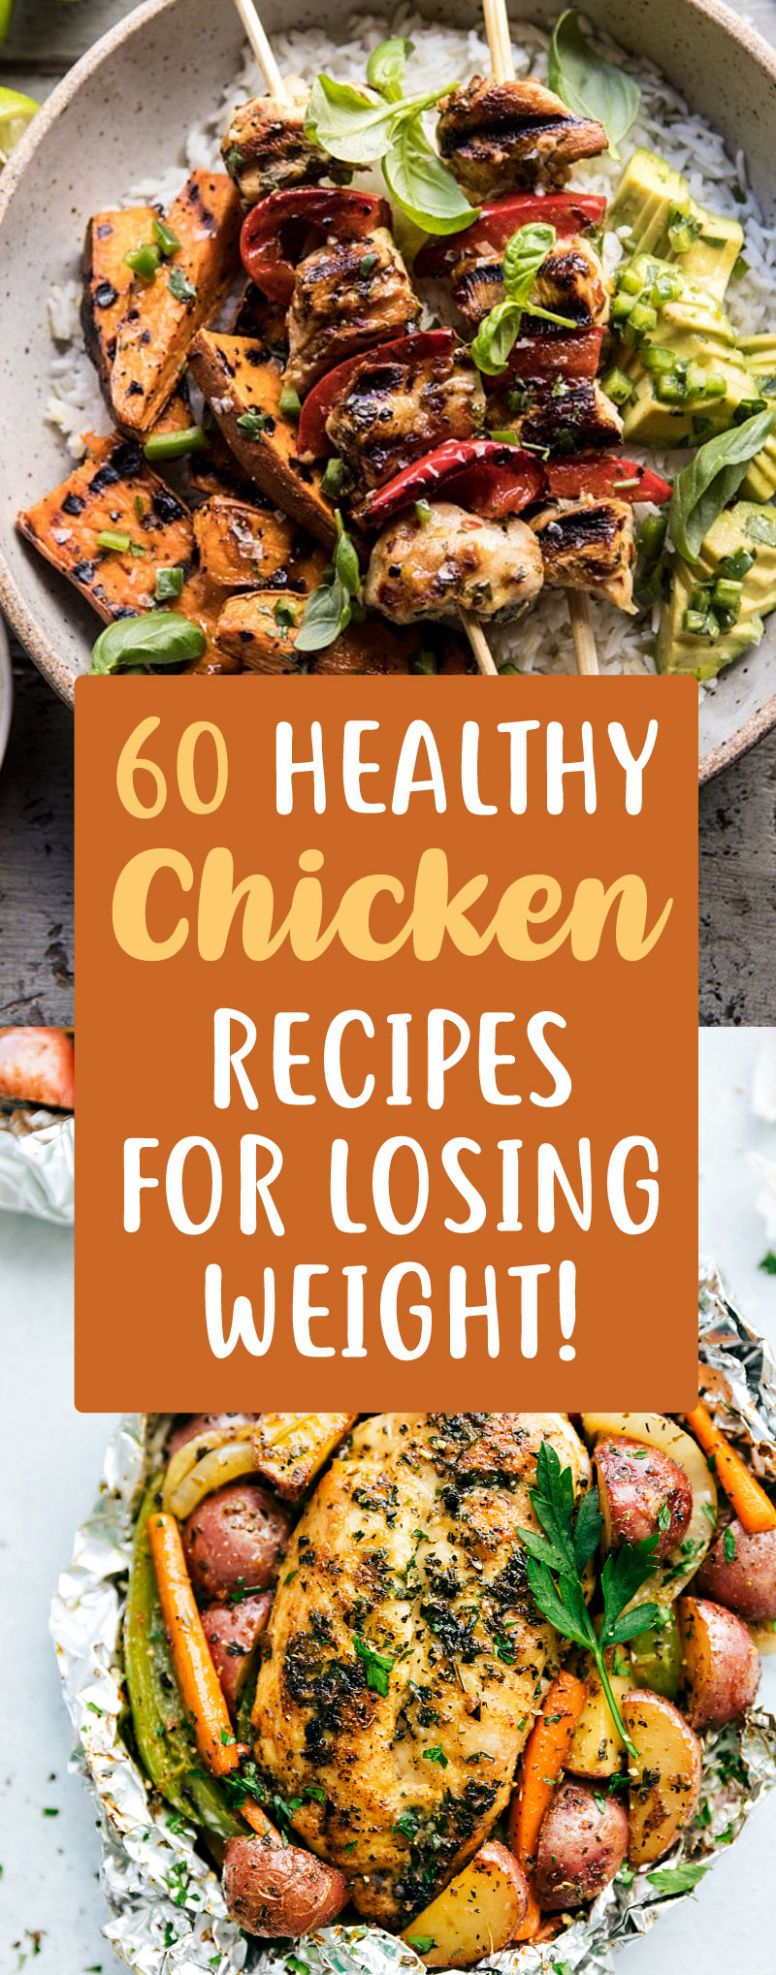 8 Insanely Delicious Chicken Recipes That Can Help You Lose ...